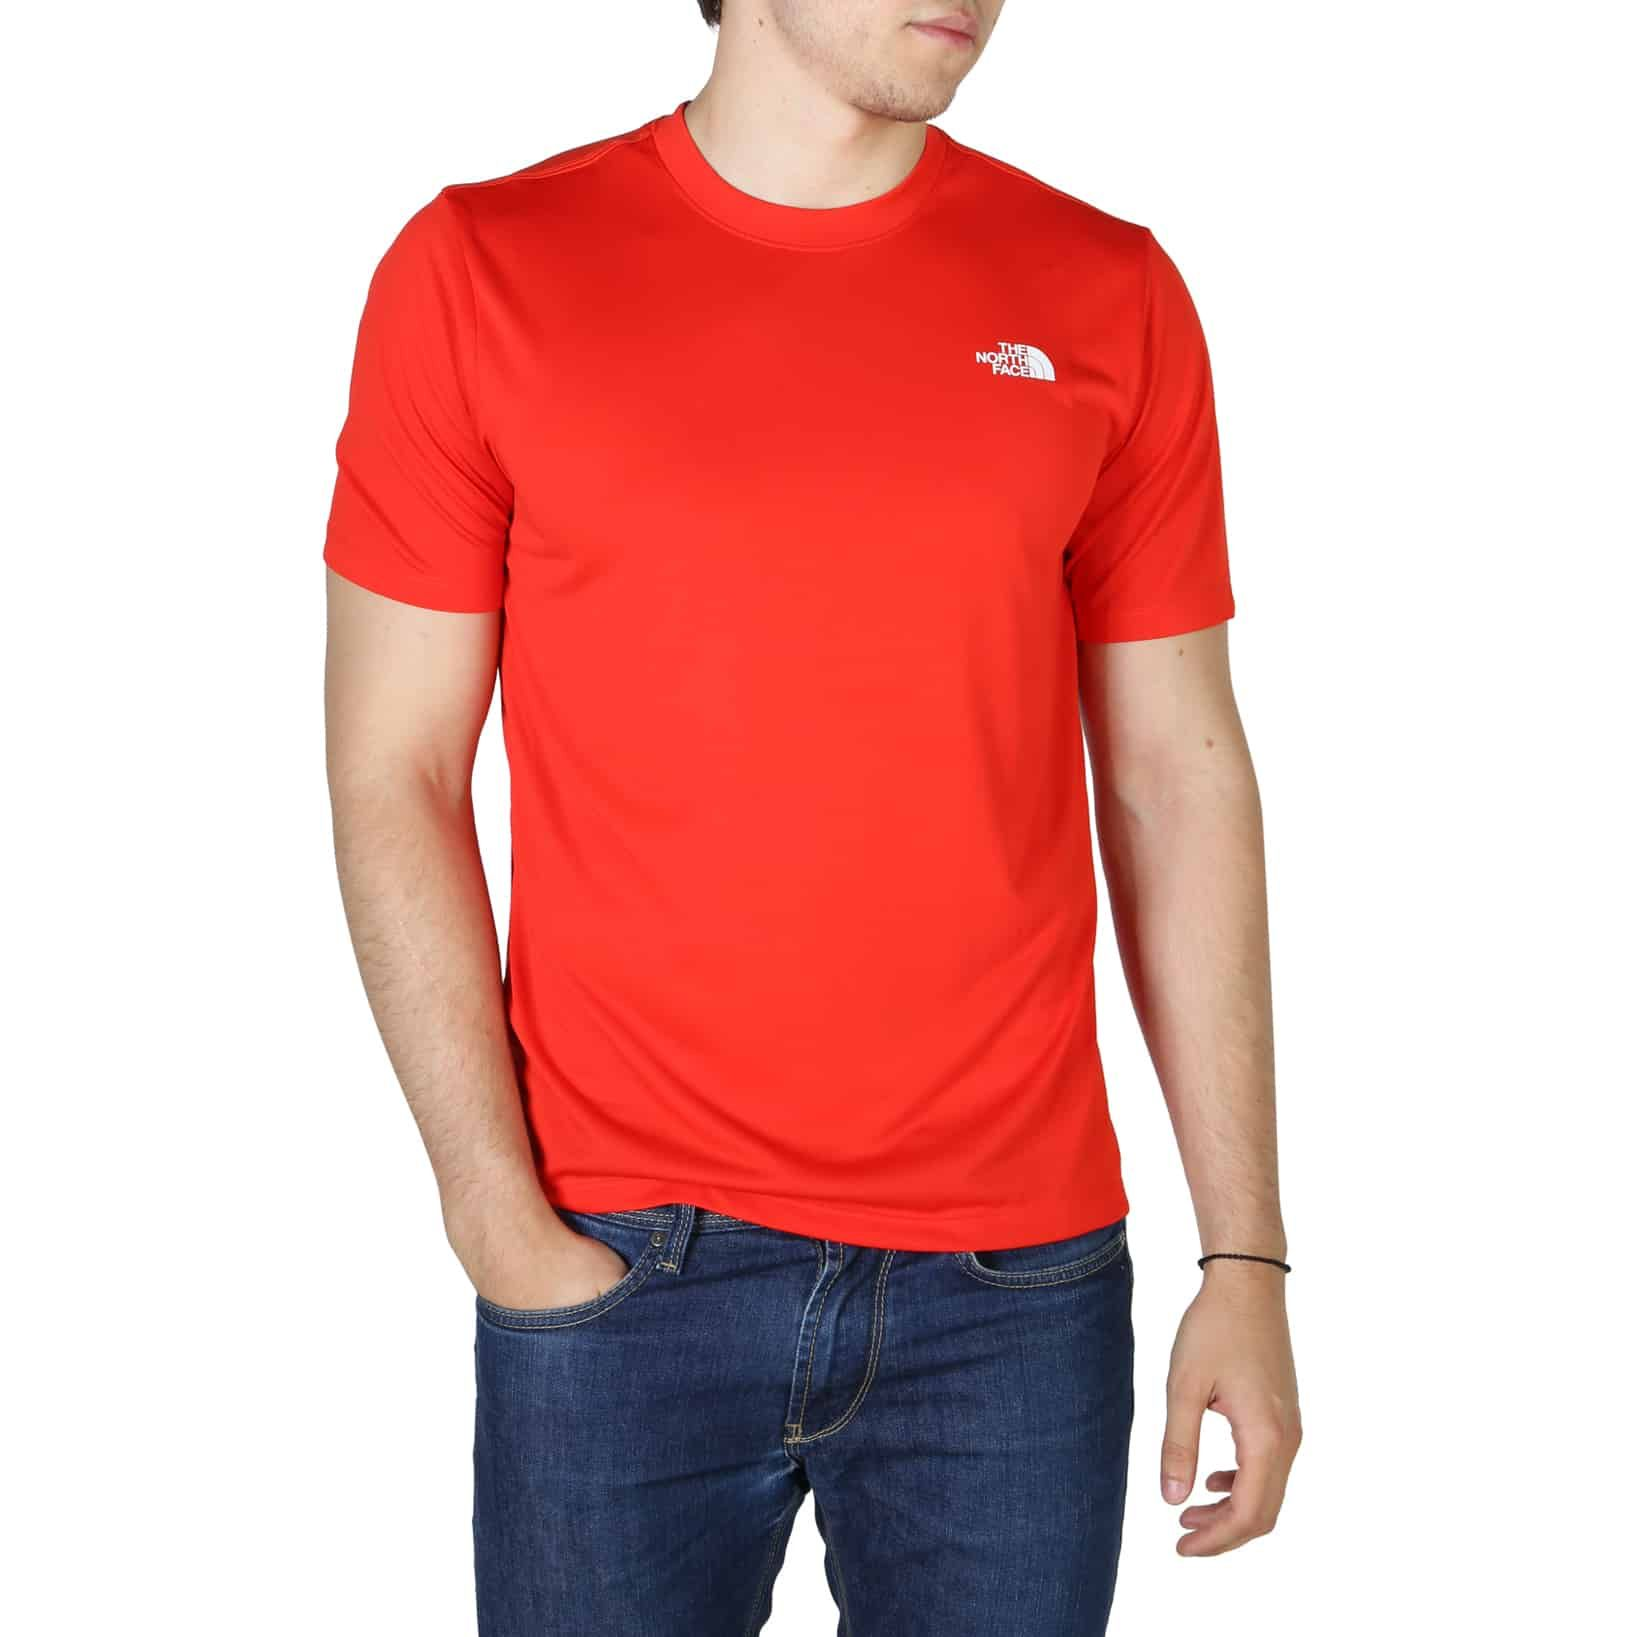 T-shirts The North Face – NF0A4CFG